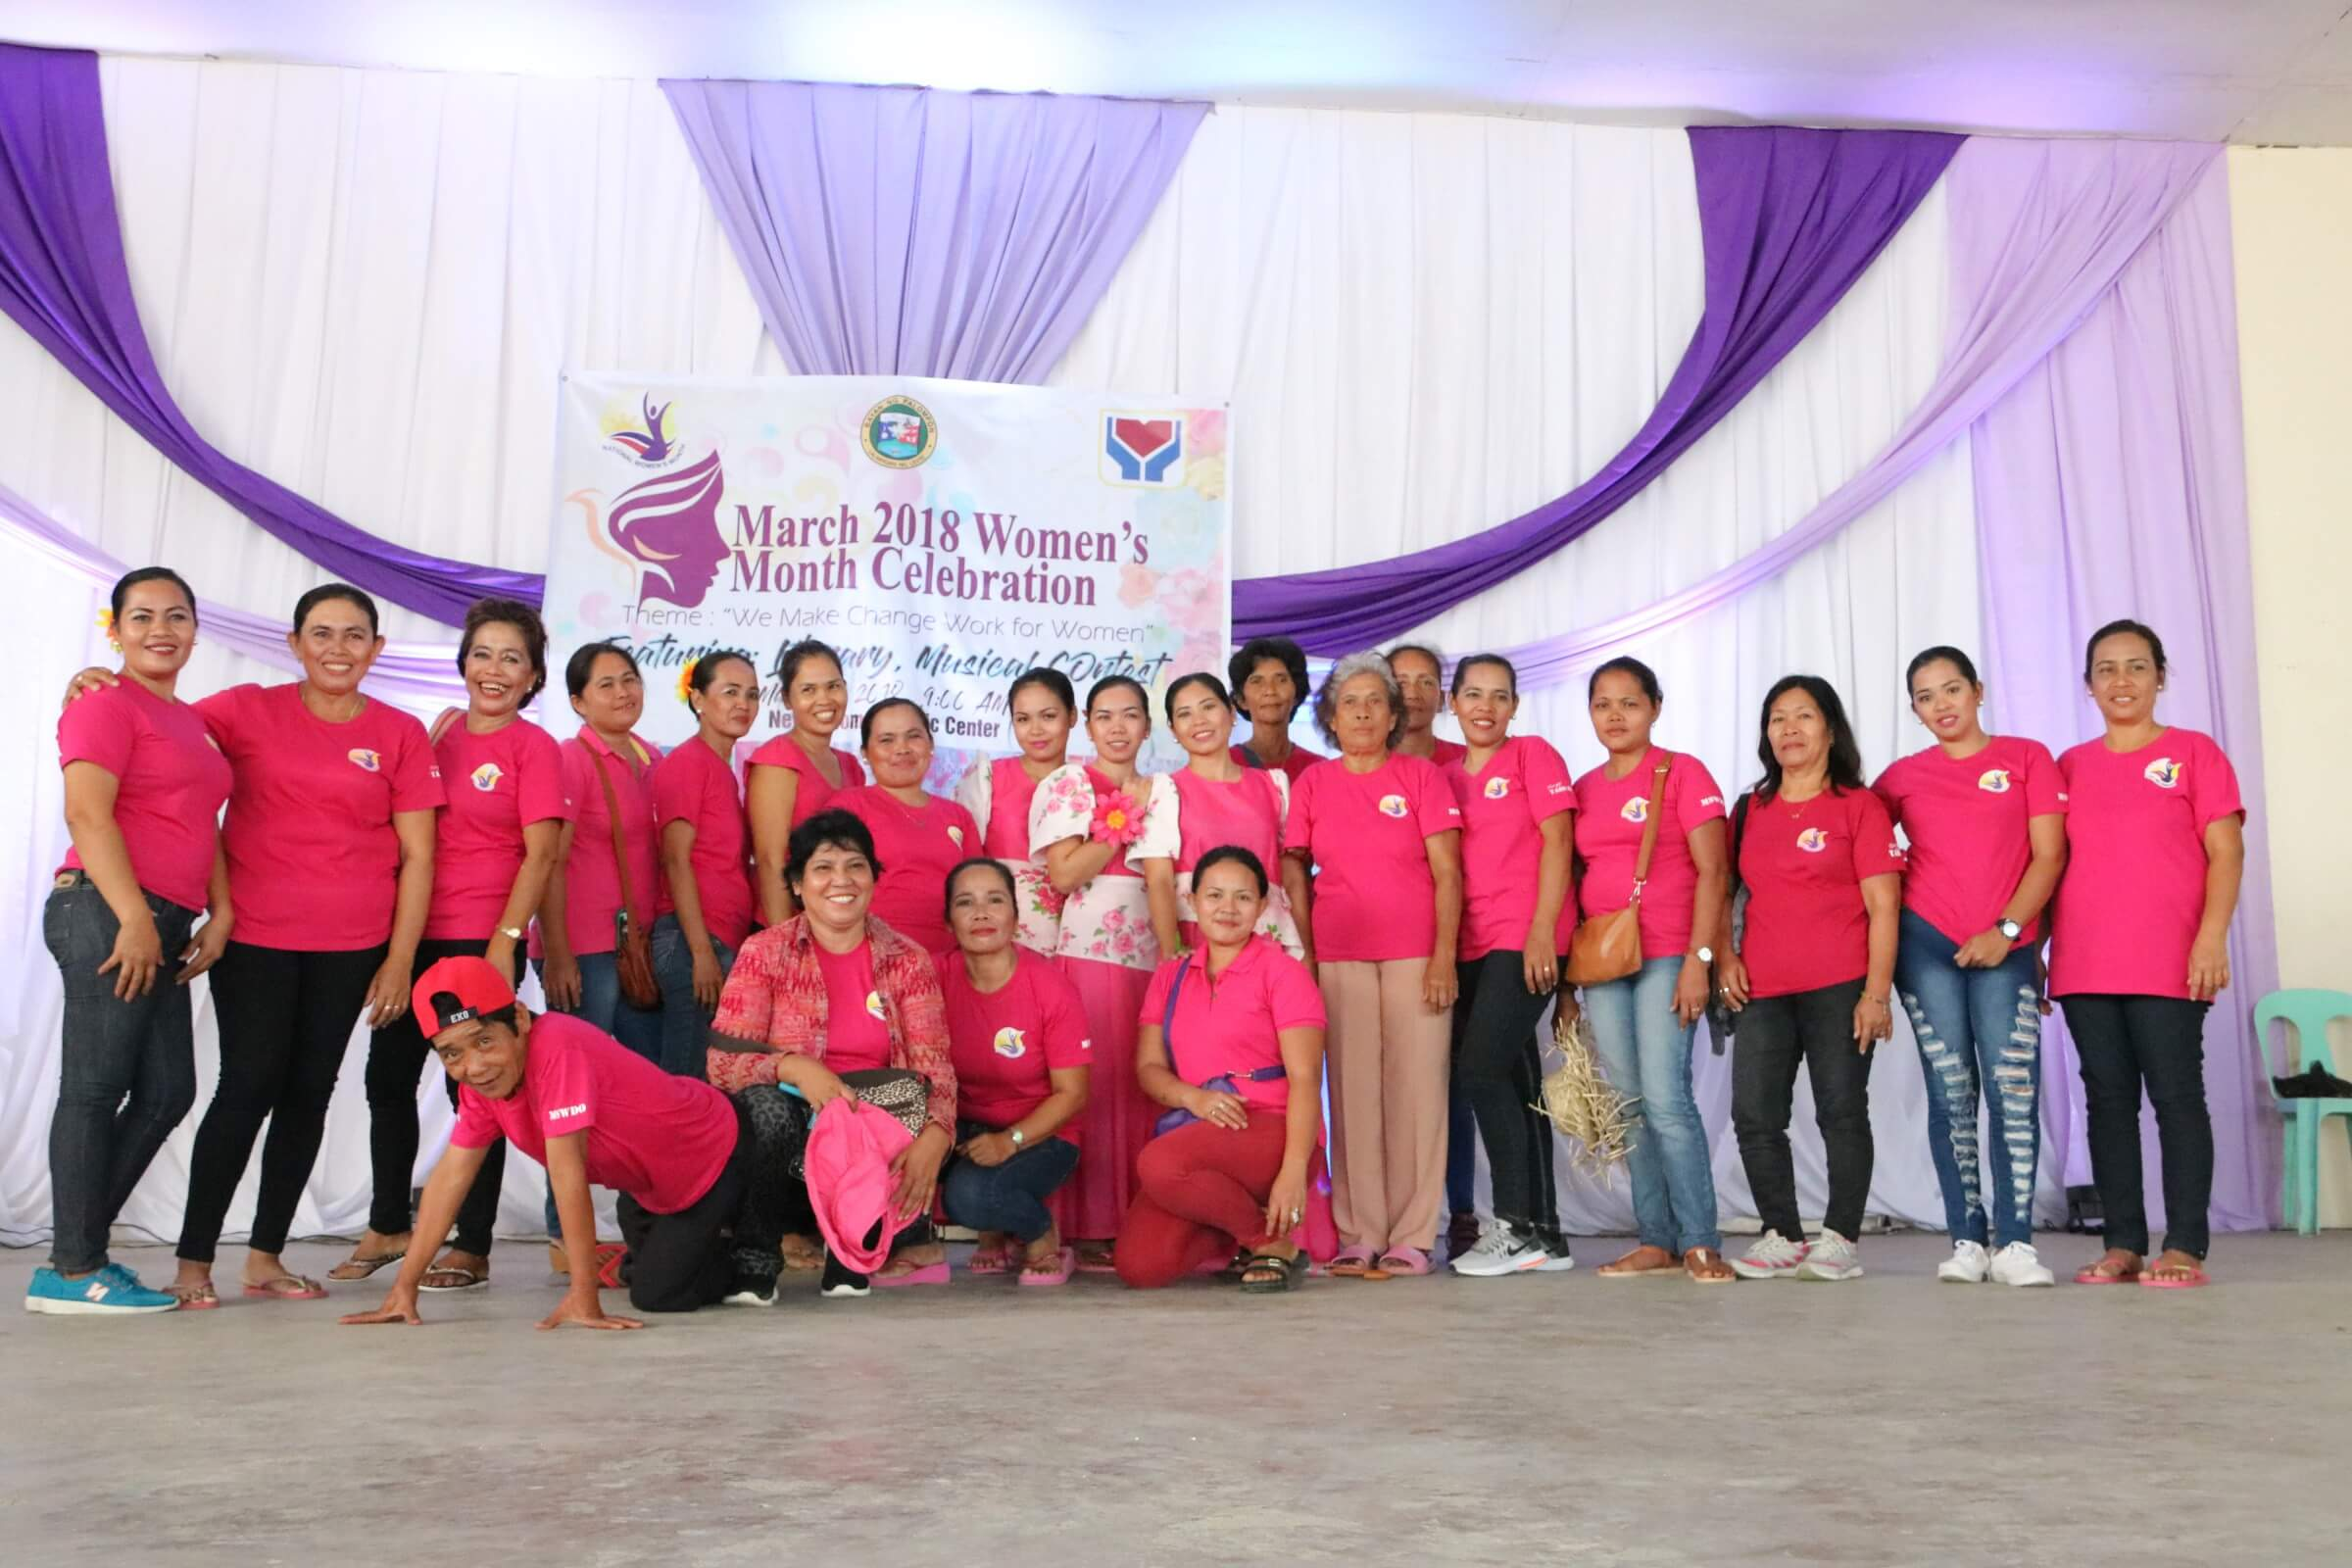 March 2018 Women's Month Celebration